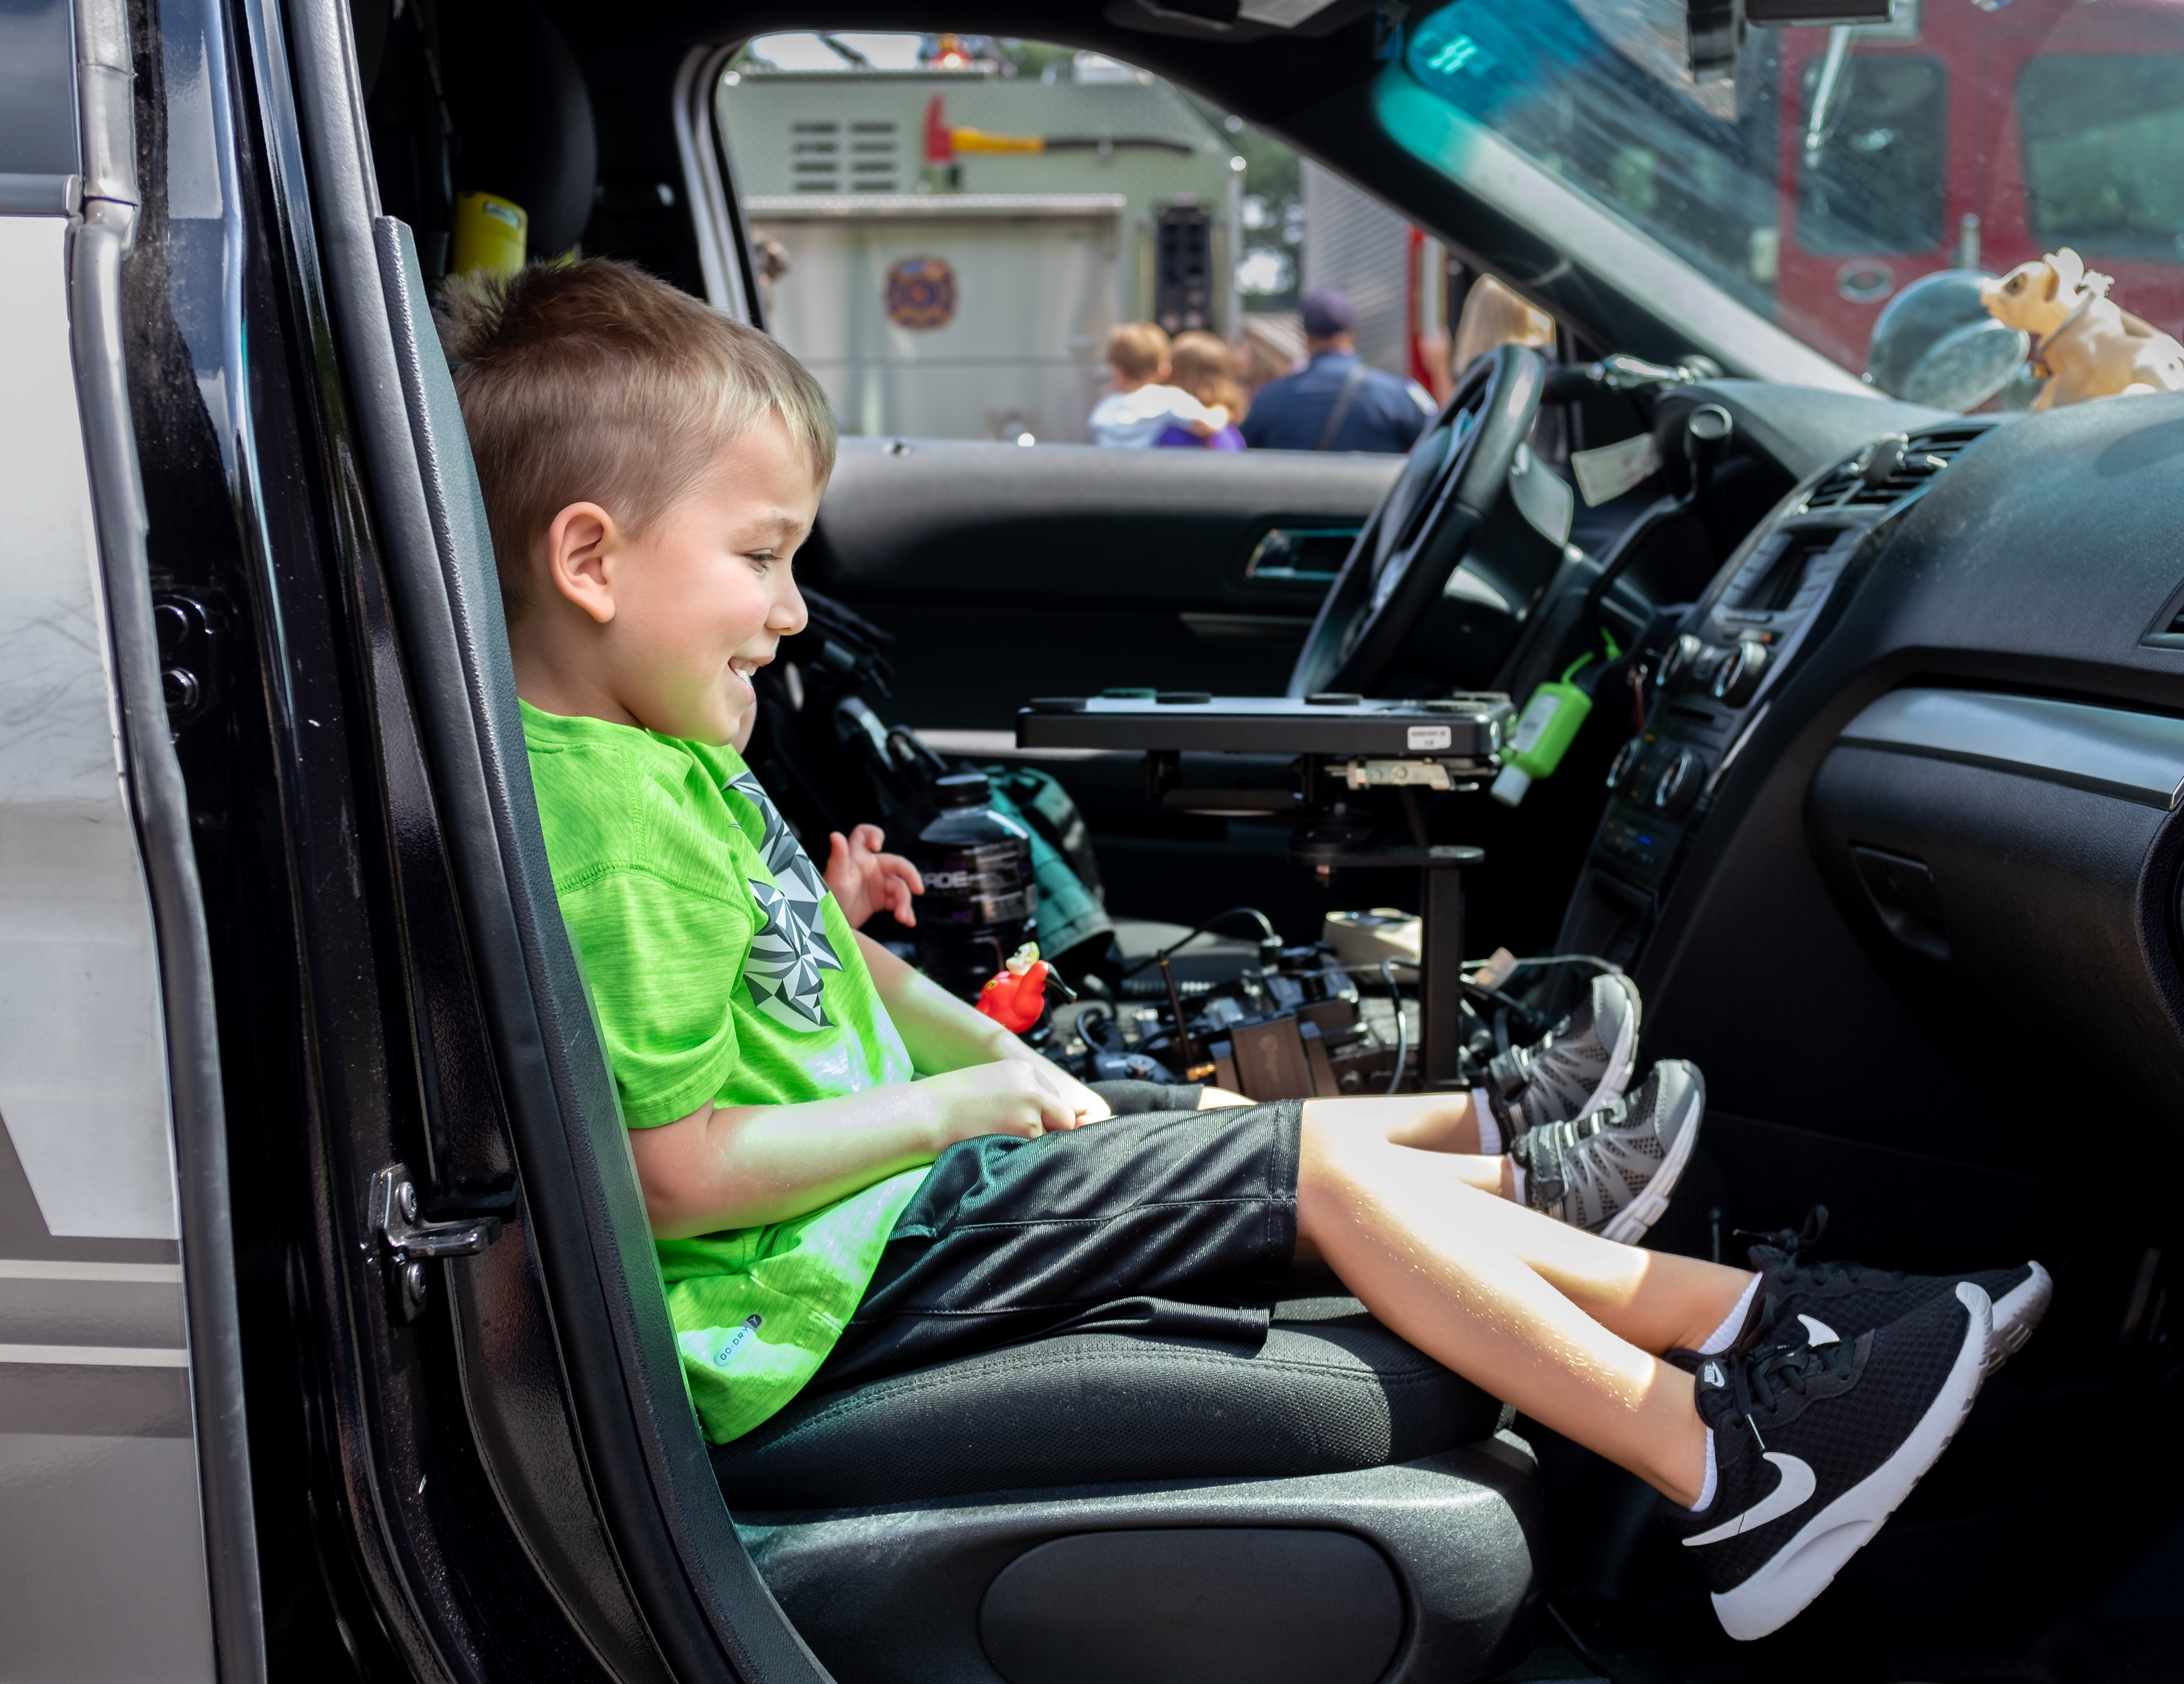 Touch a Truck: Patroling a crusier